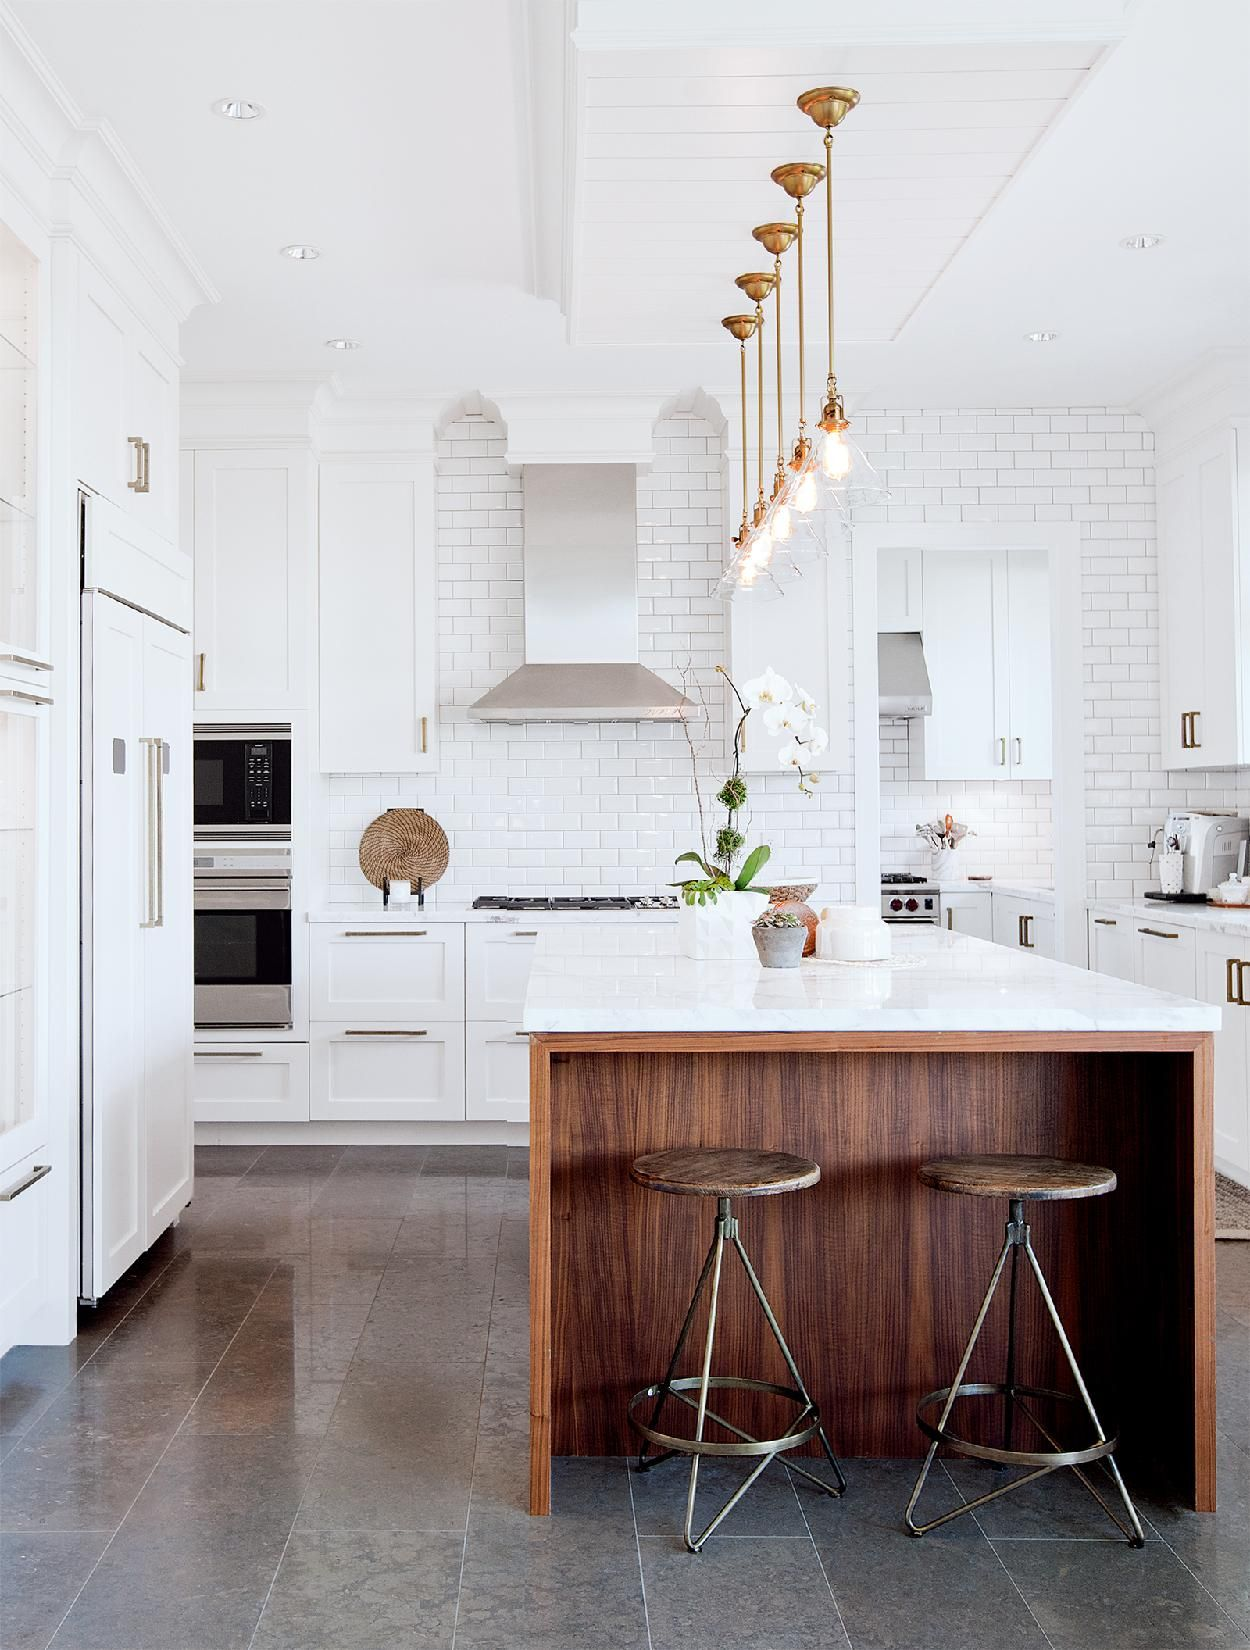 Modern kitchen with a wood island and retro bronze pendant lights